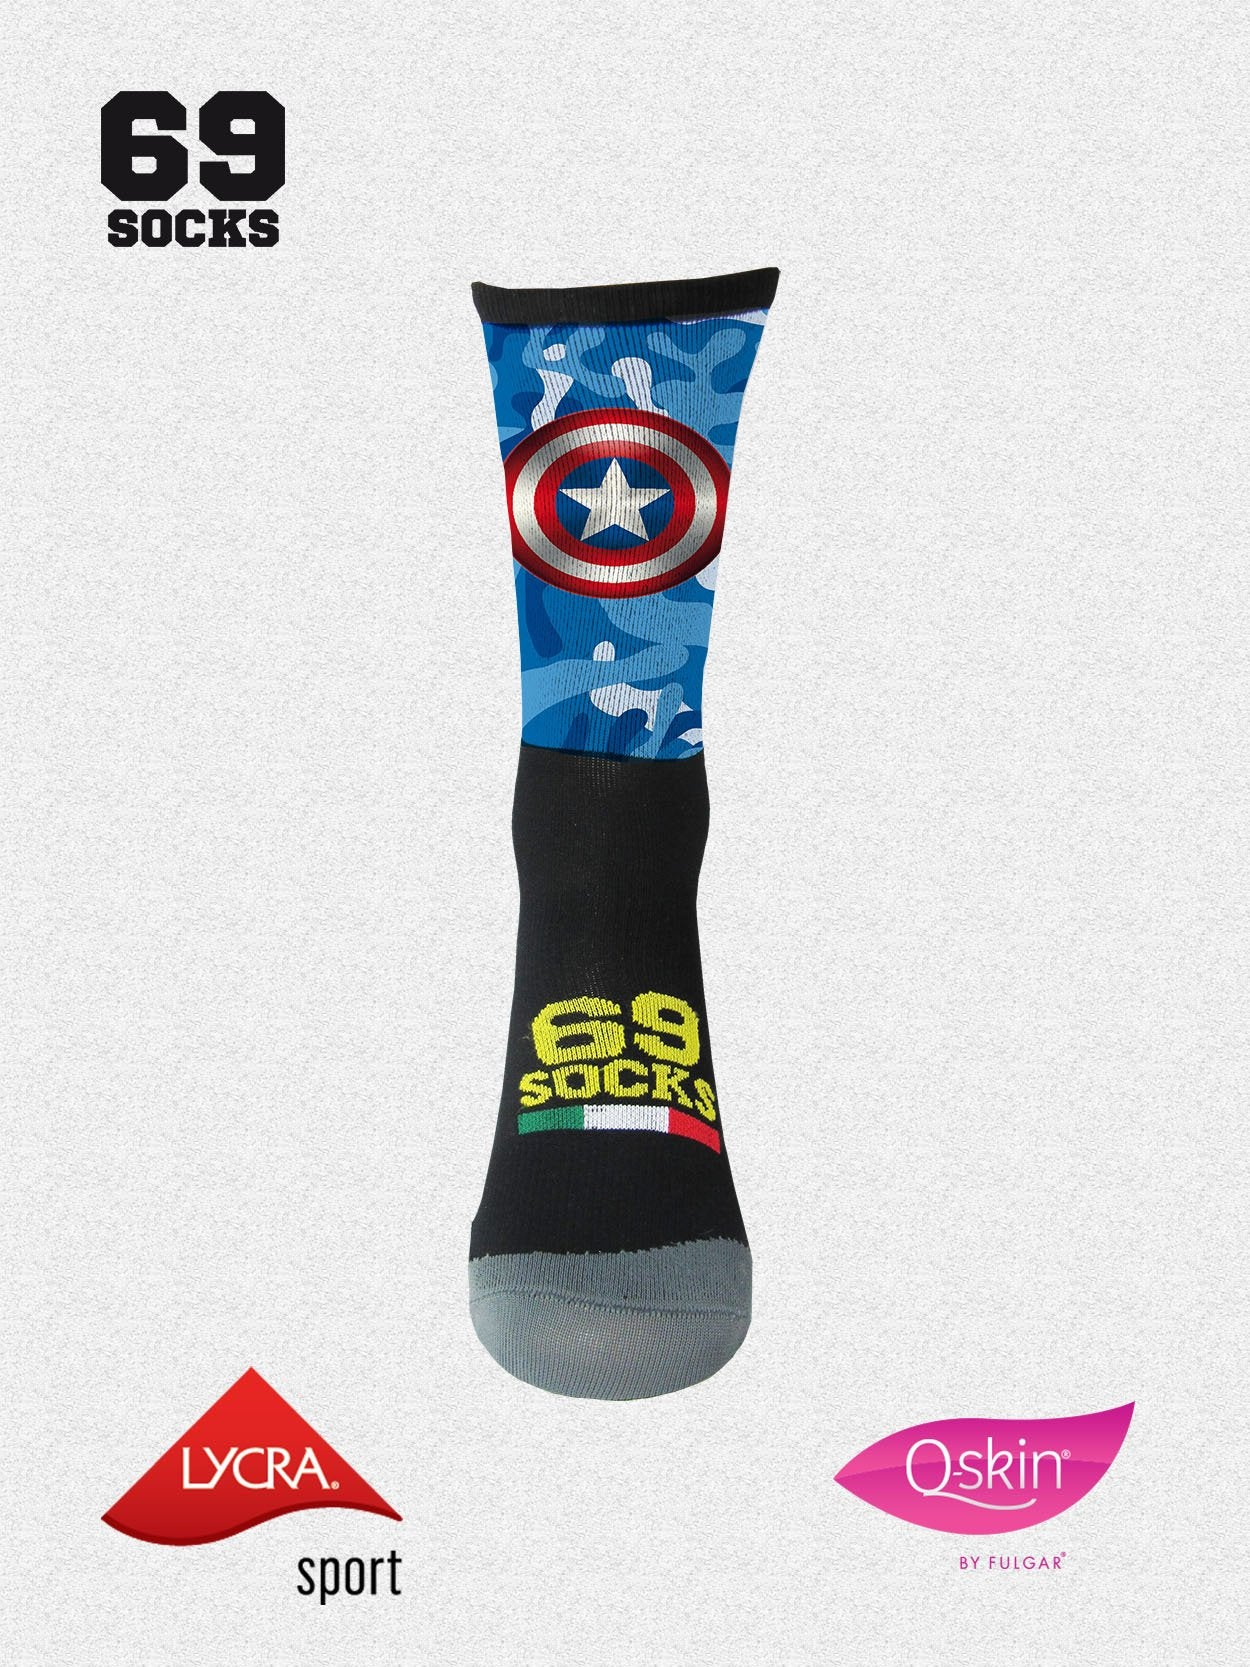 #69socks Q-skin Short Capitan Runner Camo